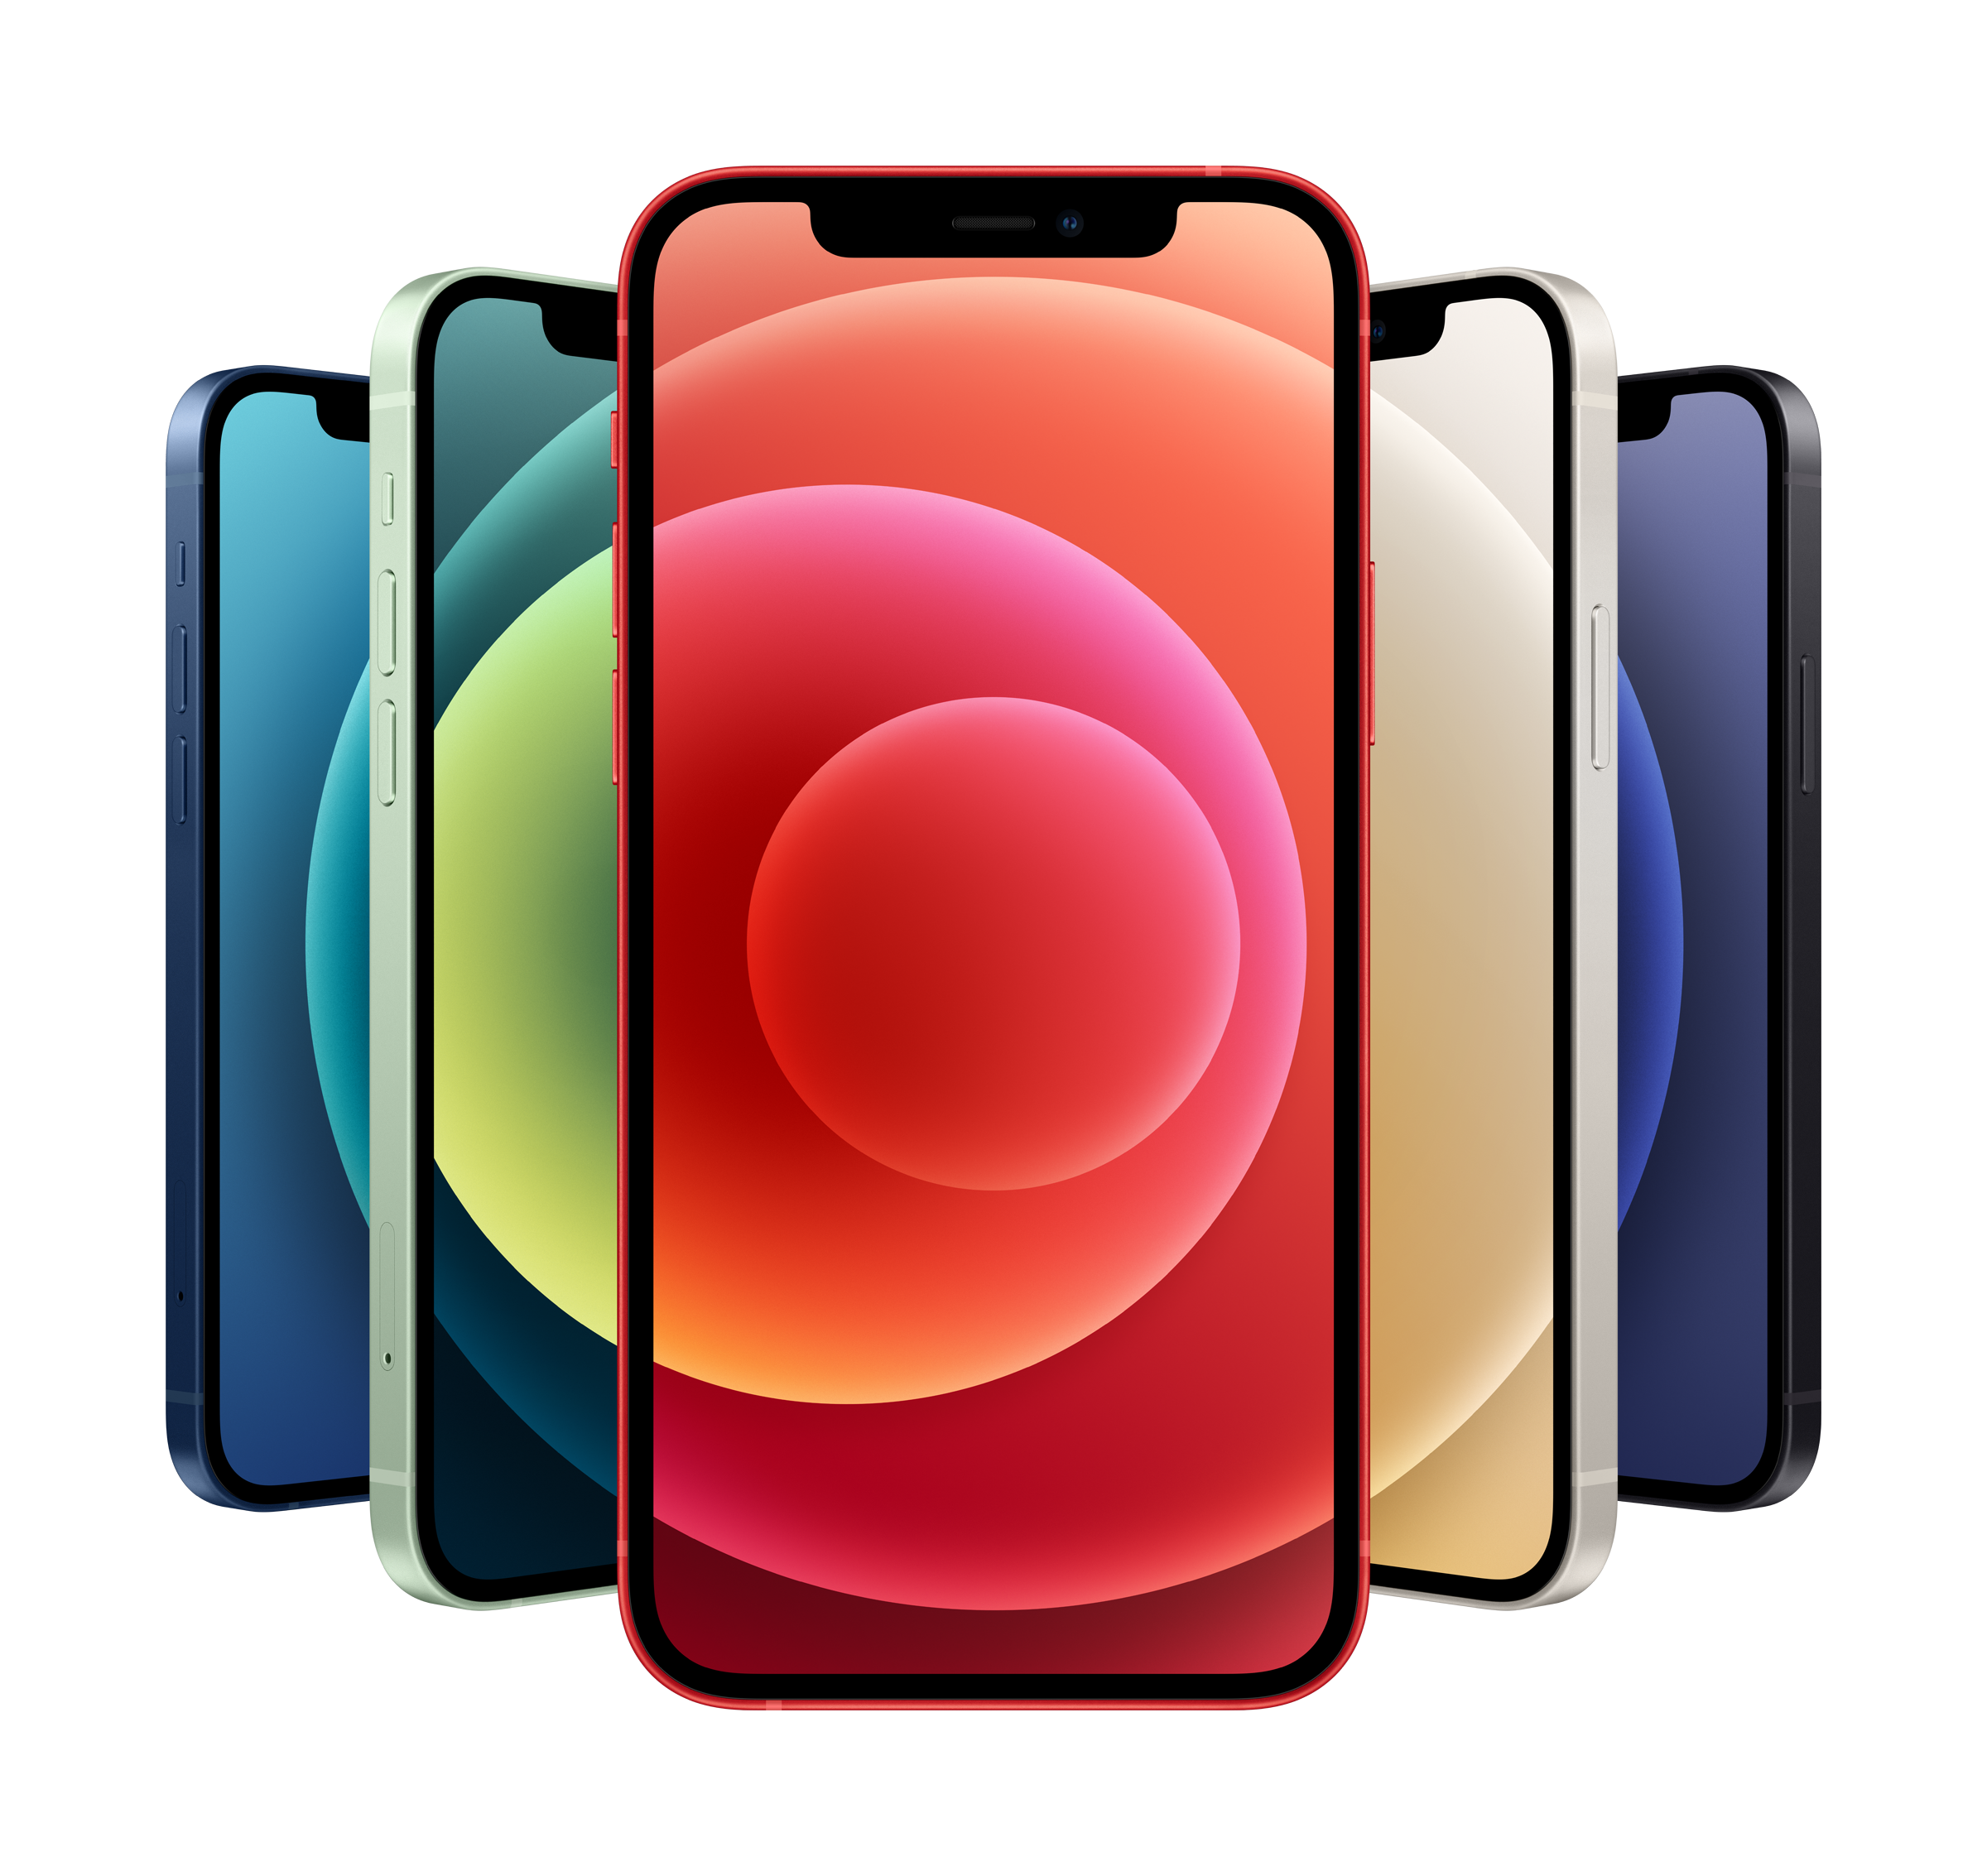 iPhone 12 color